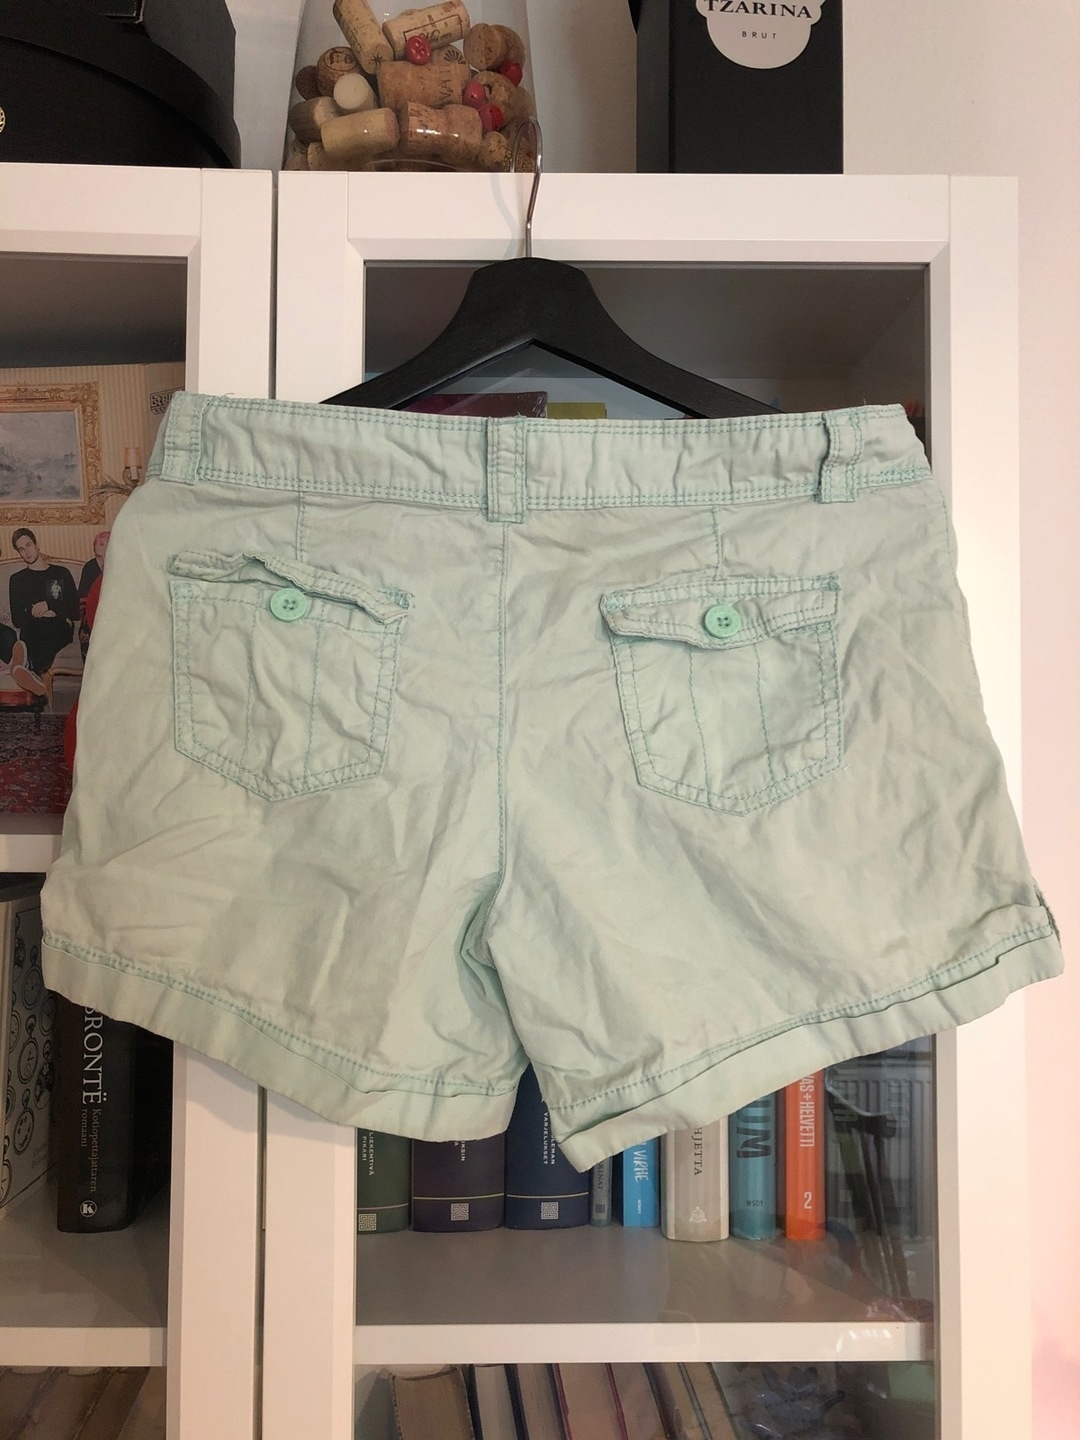 Women's shorts - TERRANOVA photo 2